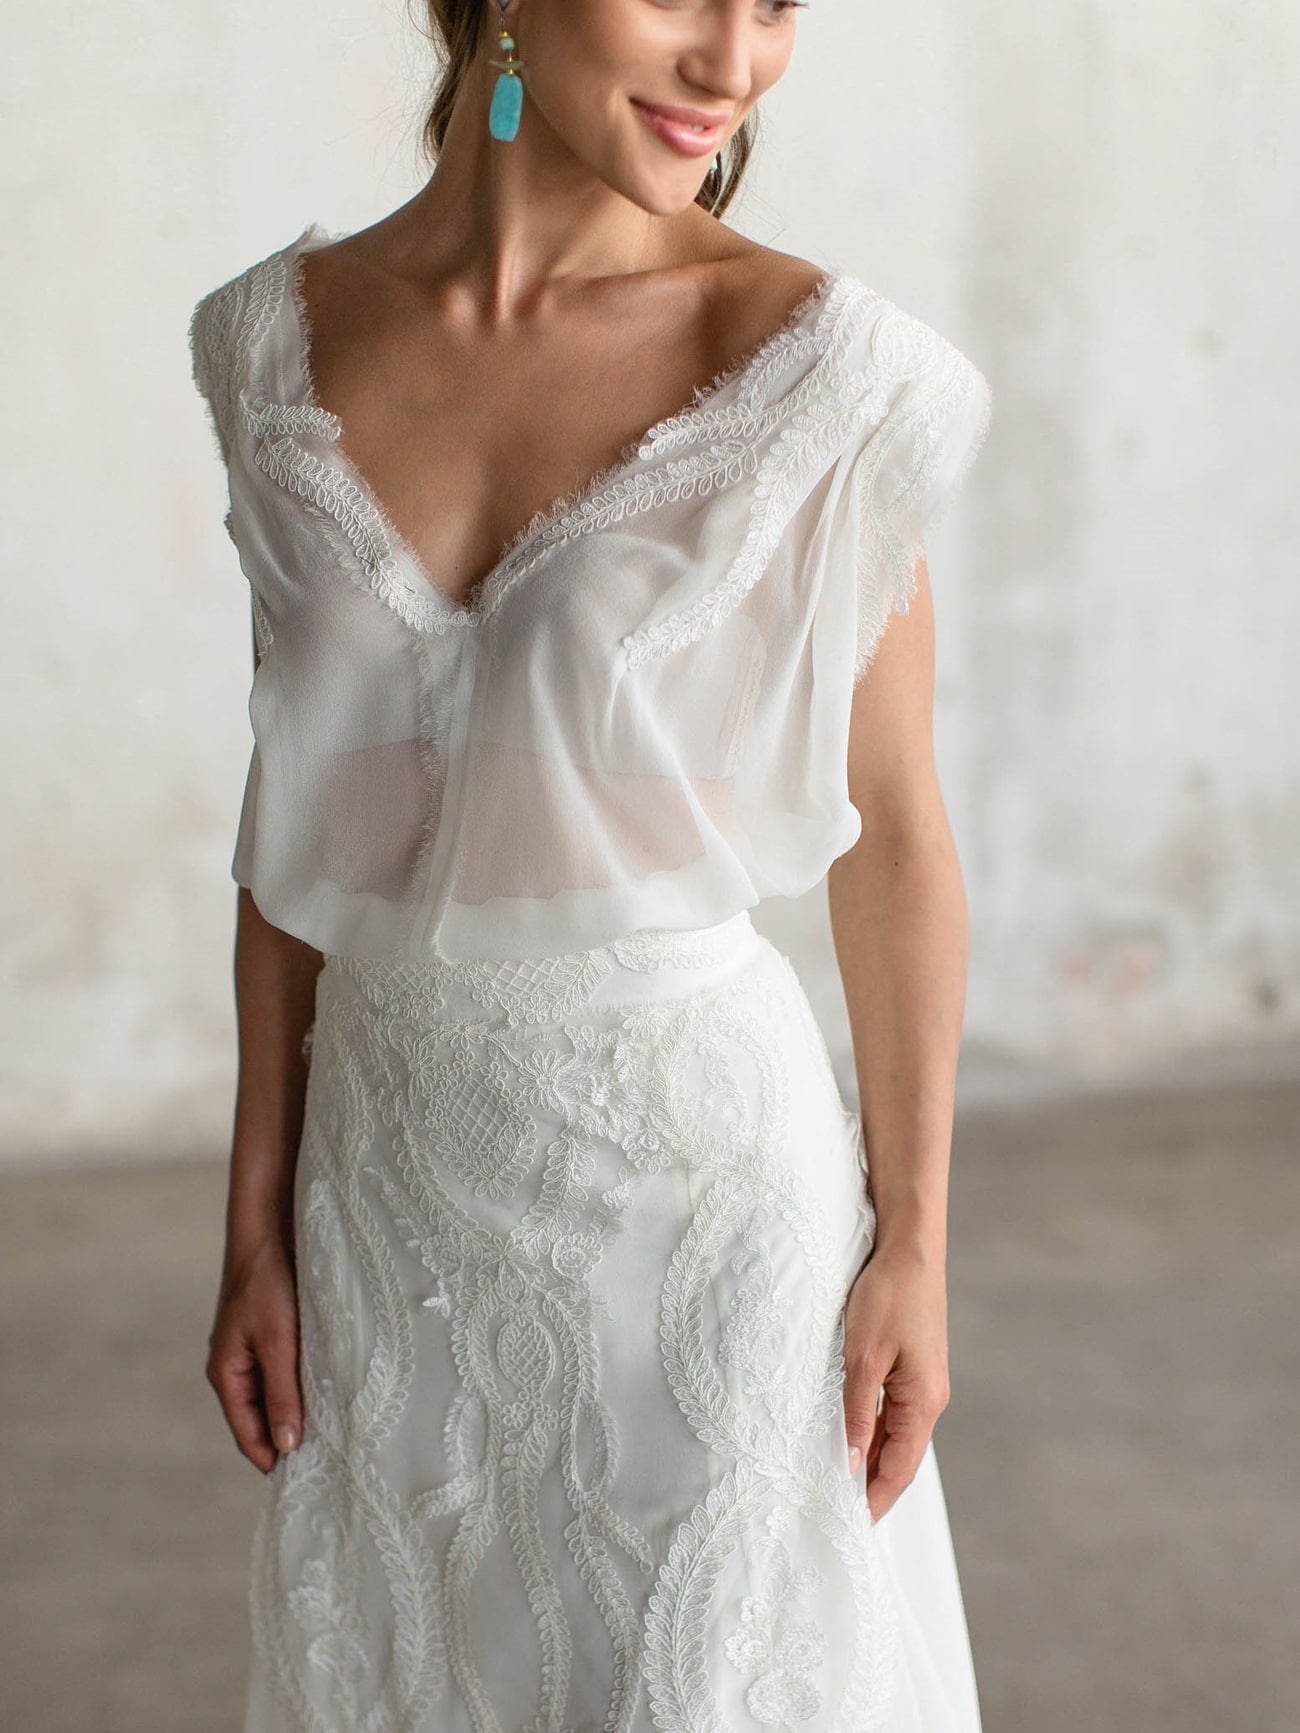 aetherial wedding dress